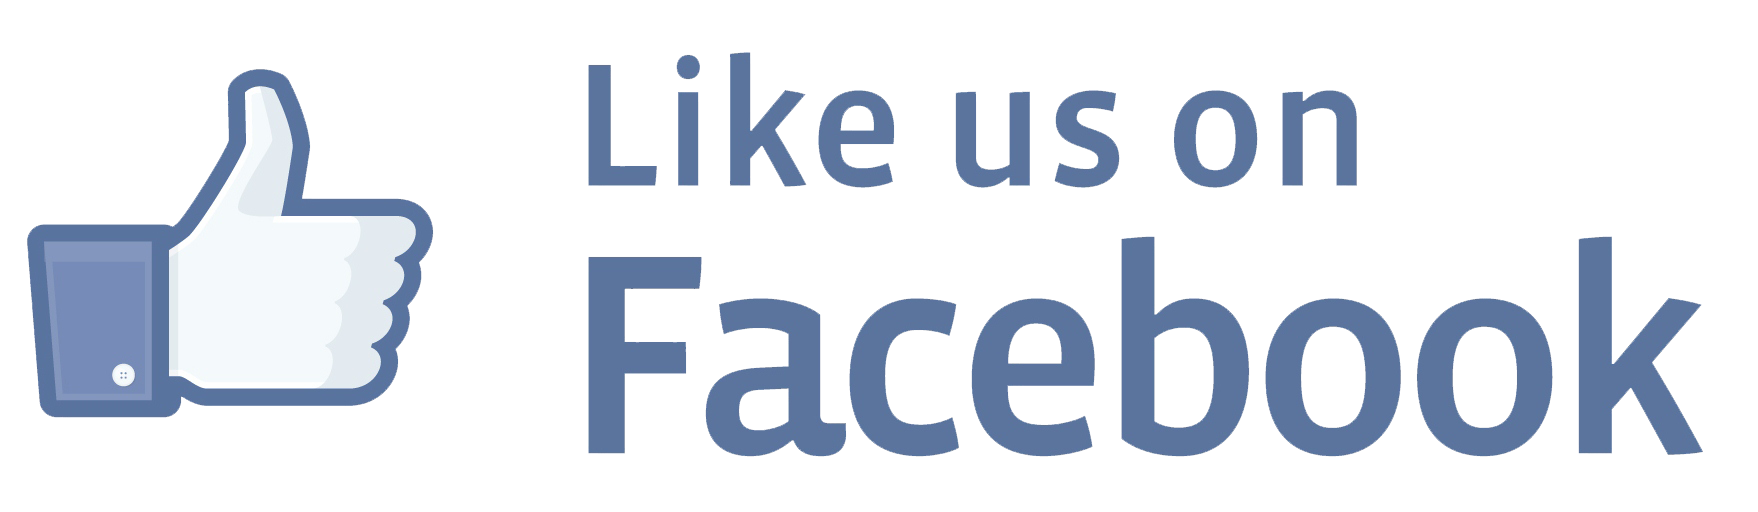 Follow us by liking our facebook page